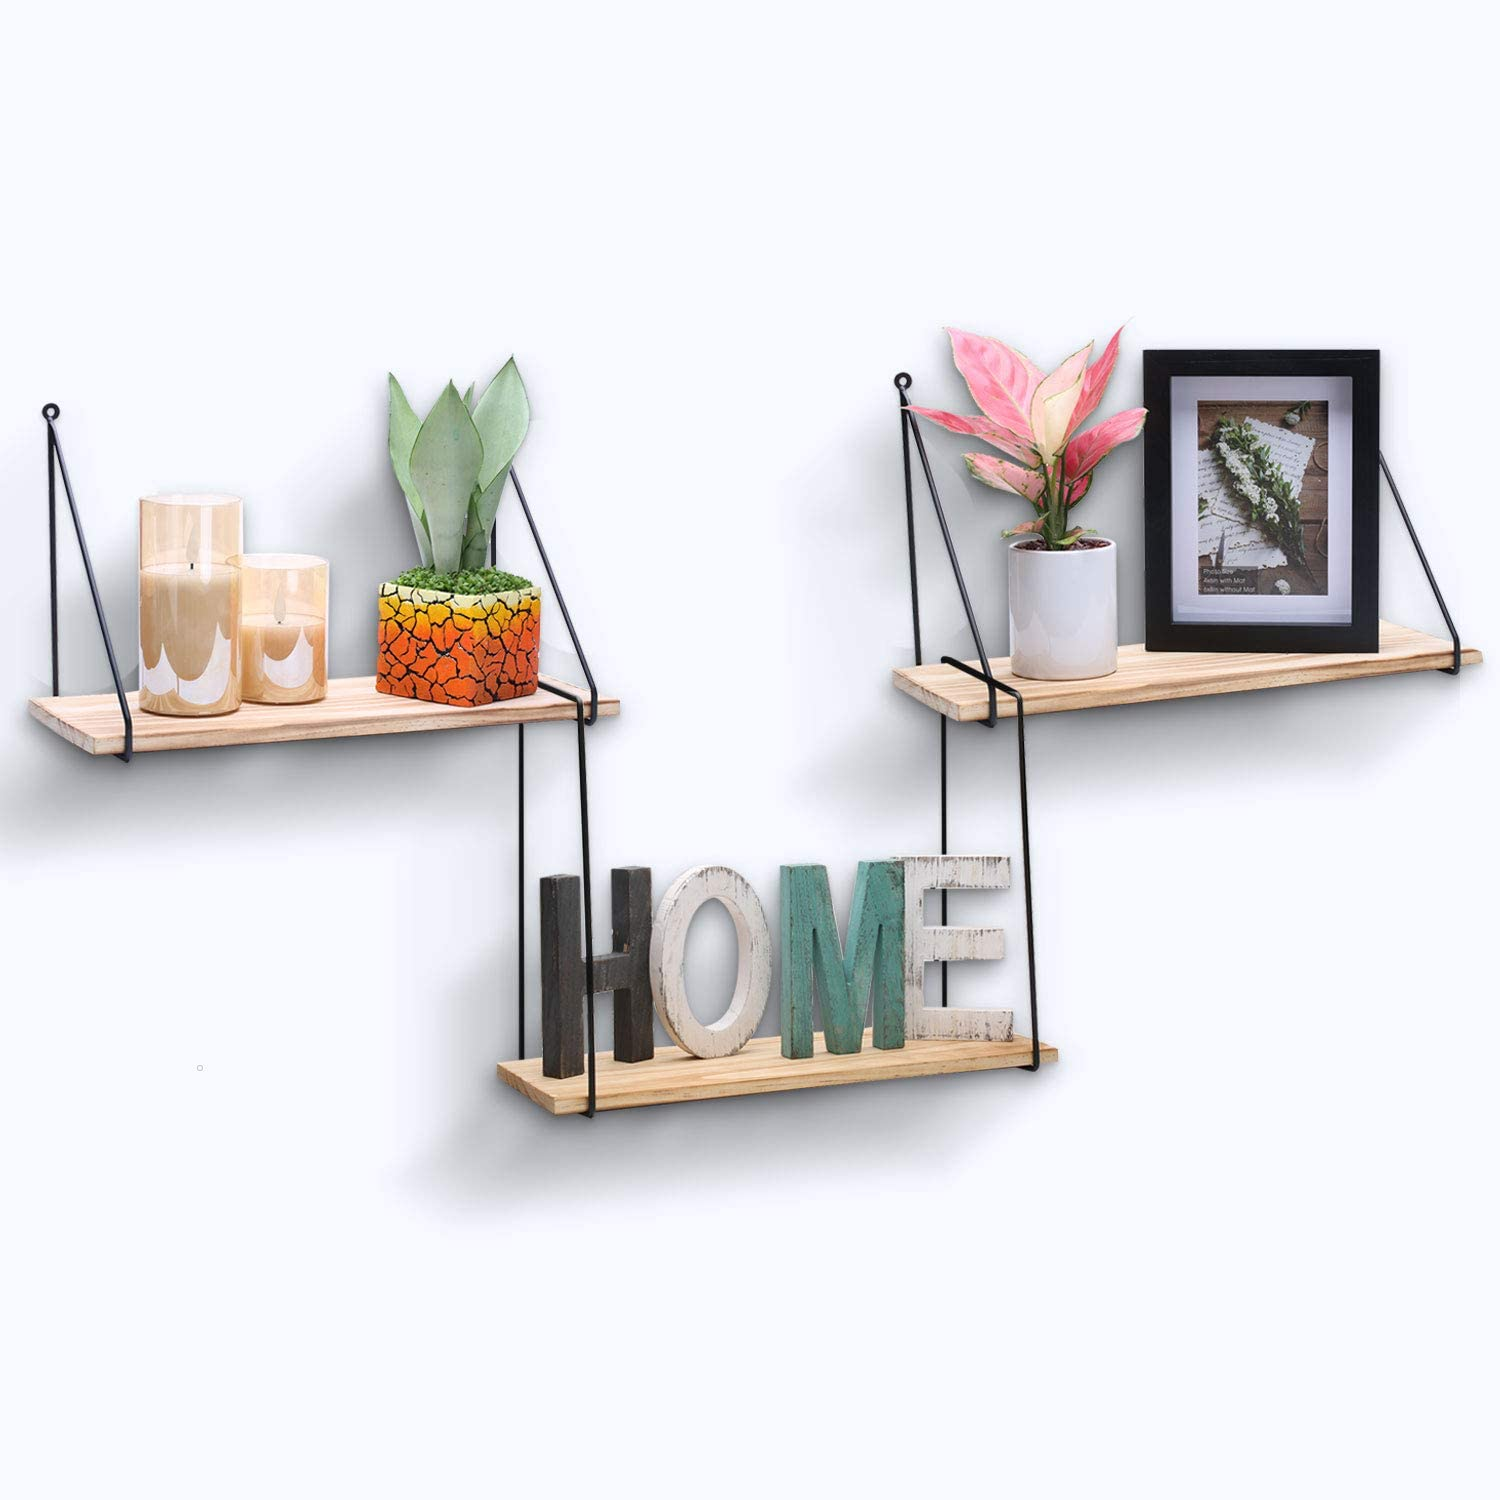 PR PeakRous Wooden Shelves for Wall, Floating Shelves for Storage Set of 3 Decorative Rustic Wall Mounted Small Shelves for Bedroom Living Room Kitchen Bathroom Matte Metal Wires Holder